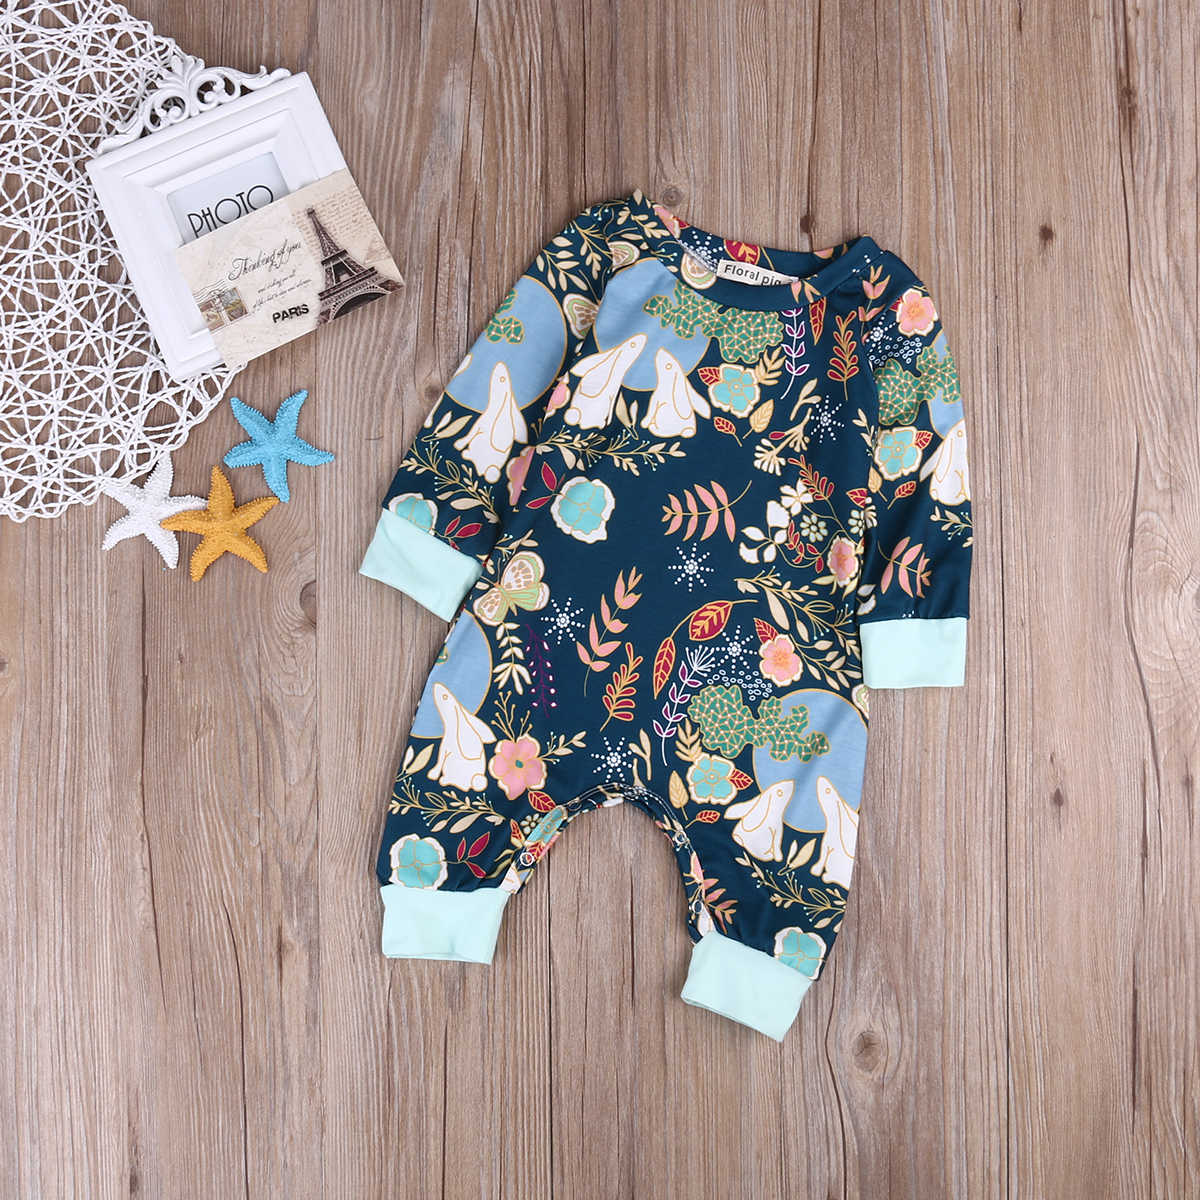 Pudcoco 2019 Brand New Cotton Newborn Baby Boys Girls Romper Jumpsuit Outfits Sunsuit Clothes